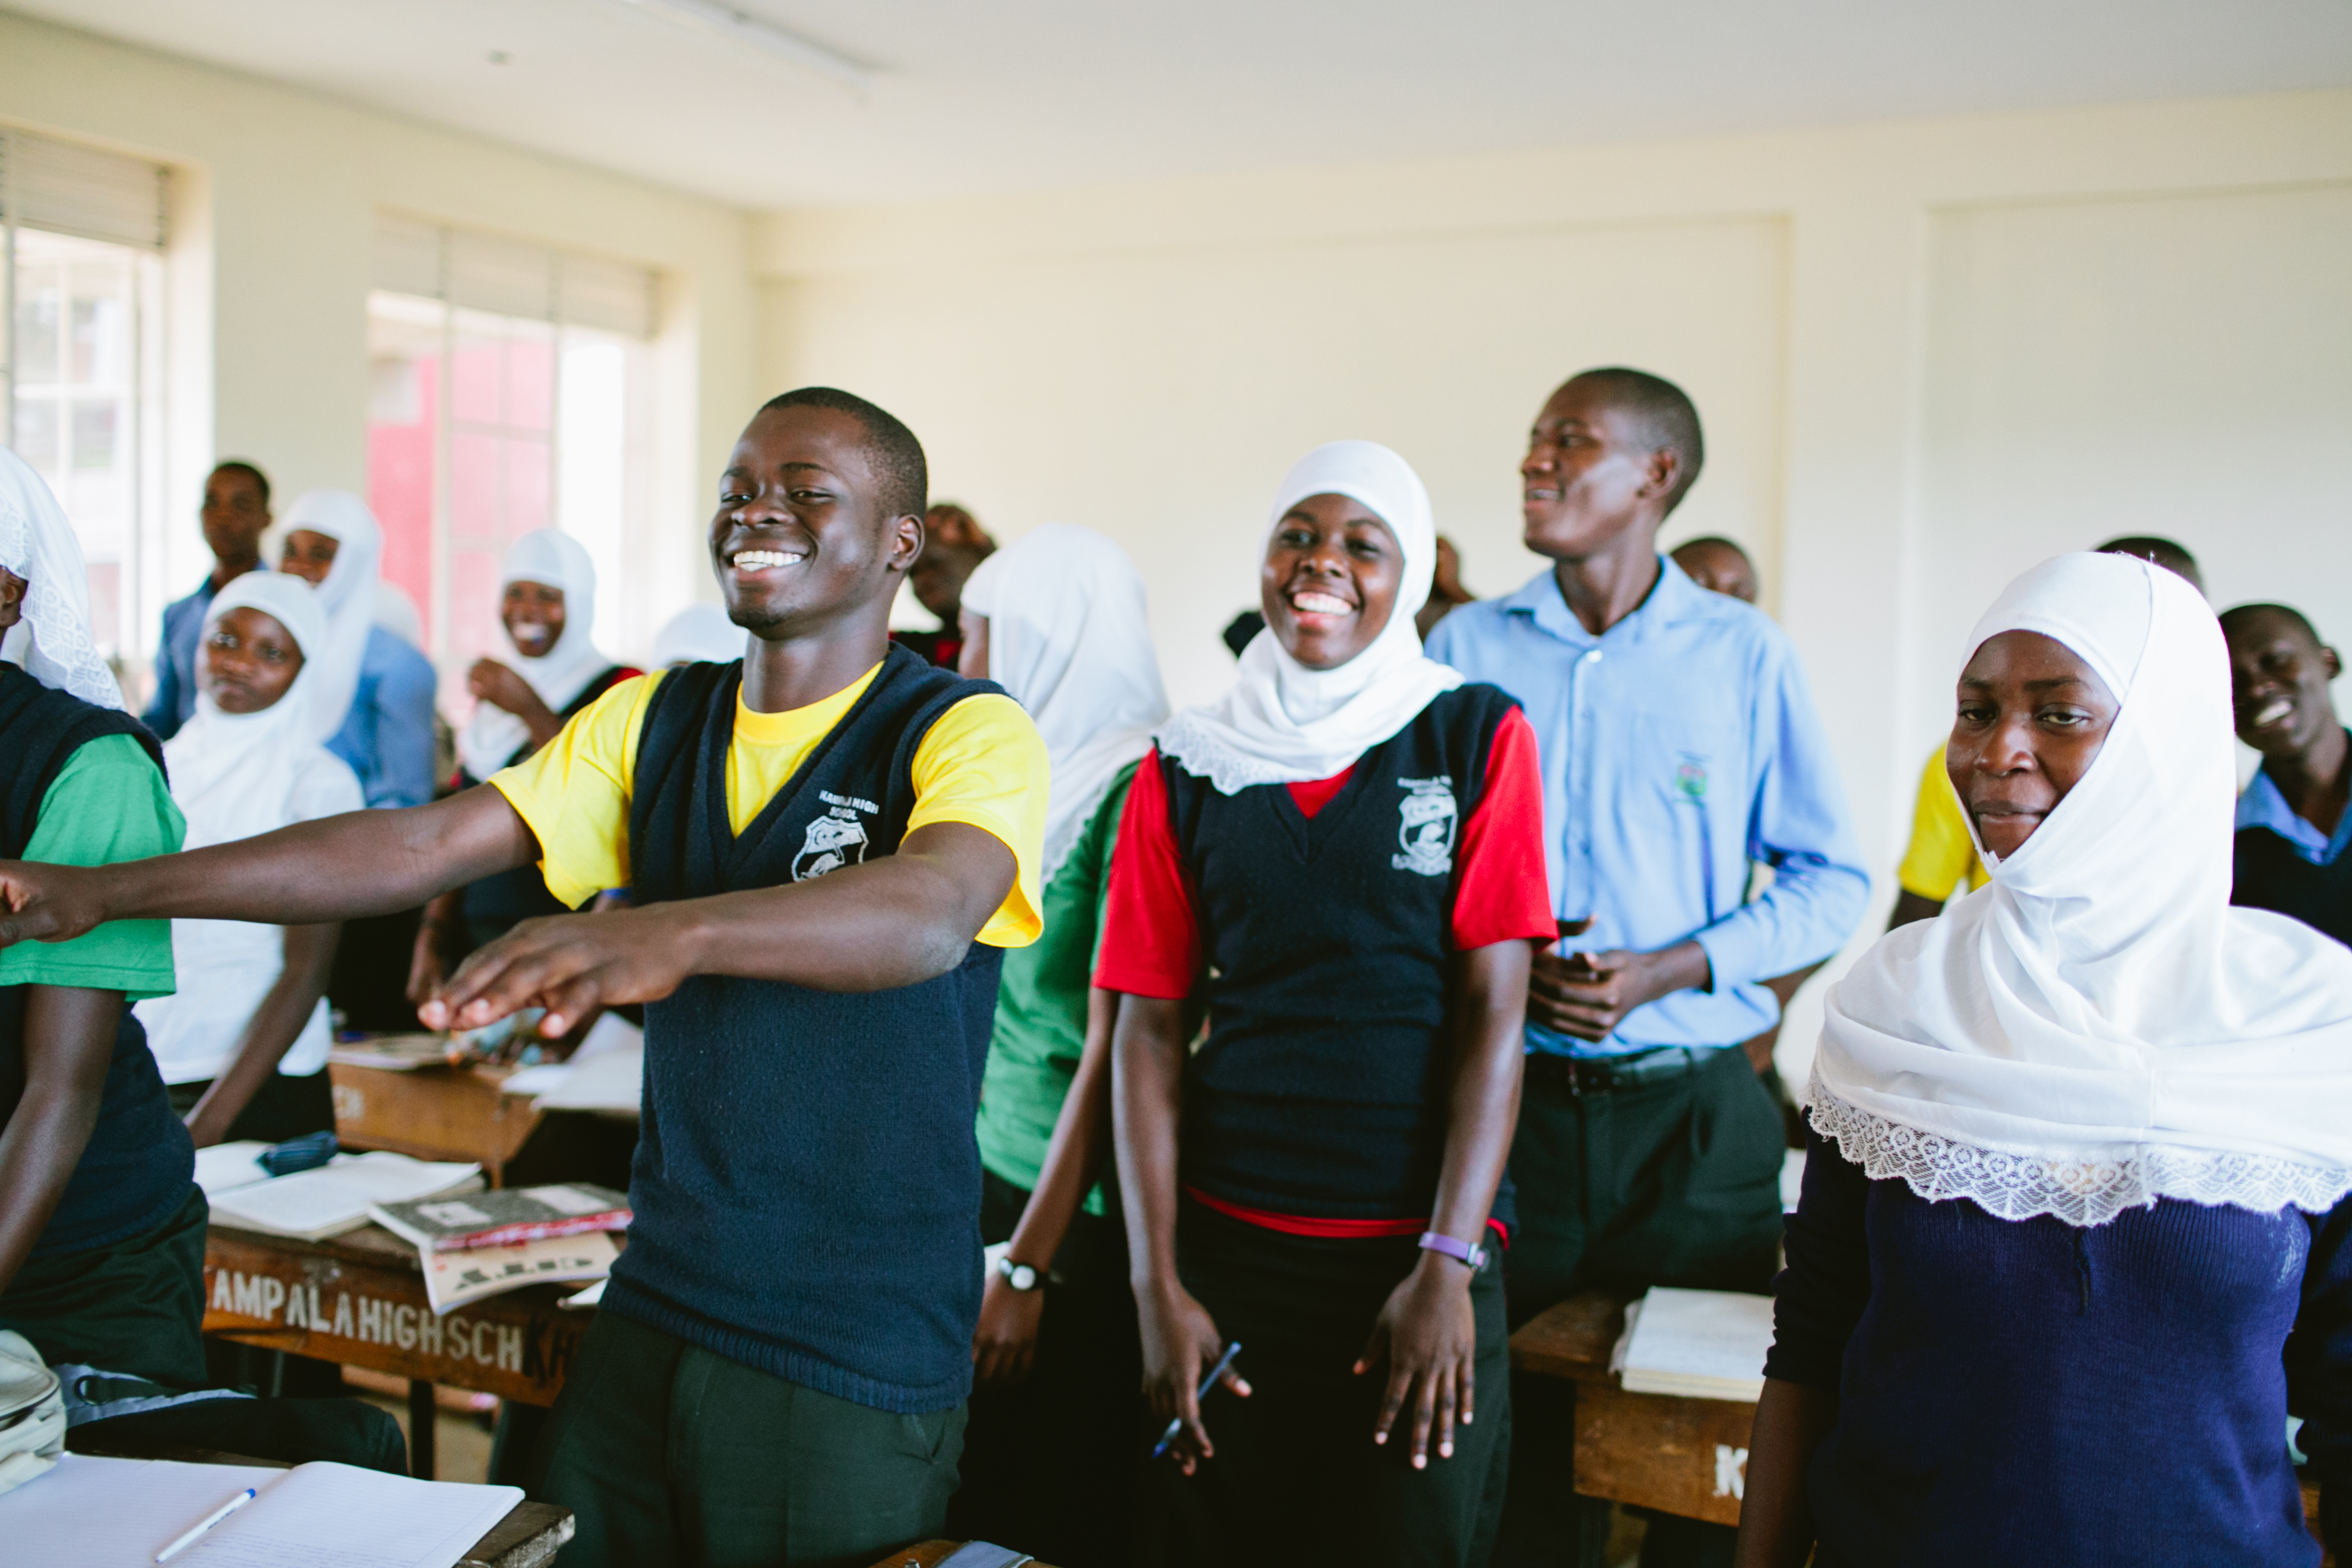 Educate! lesson (interactive game) at Kampala High School. Photo by Ashley Turner for Educate!